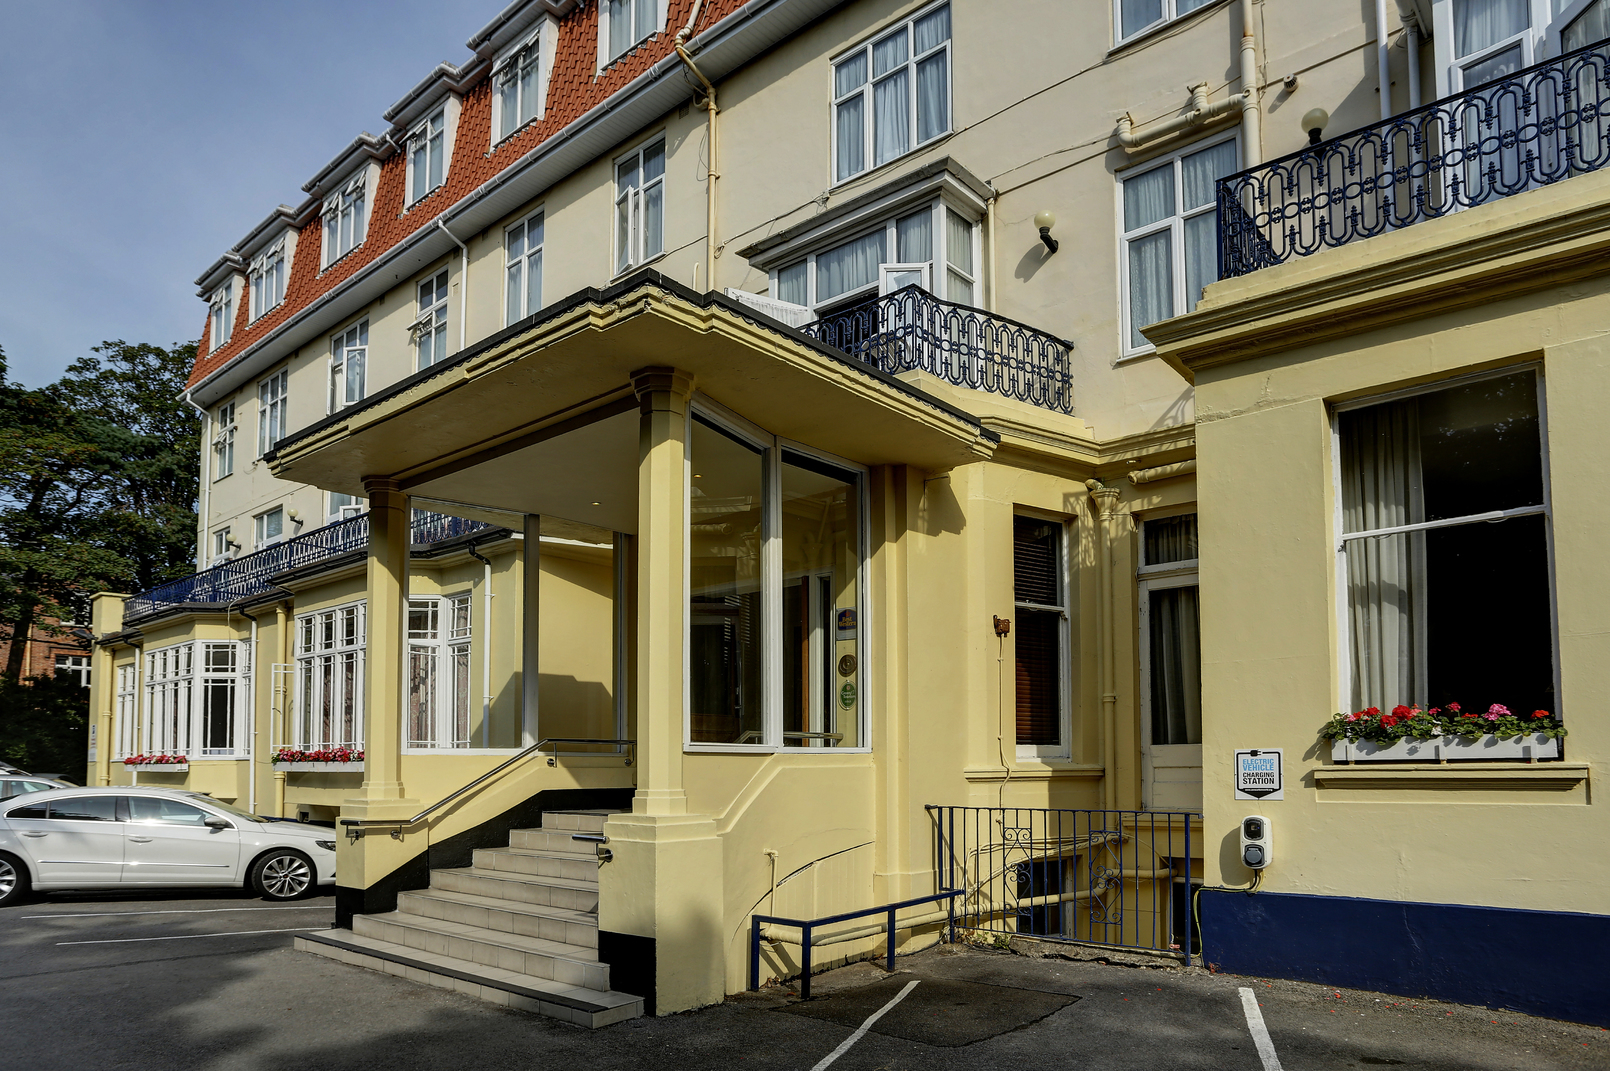 Great Western Hotel Bournemouth